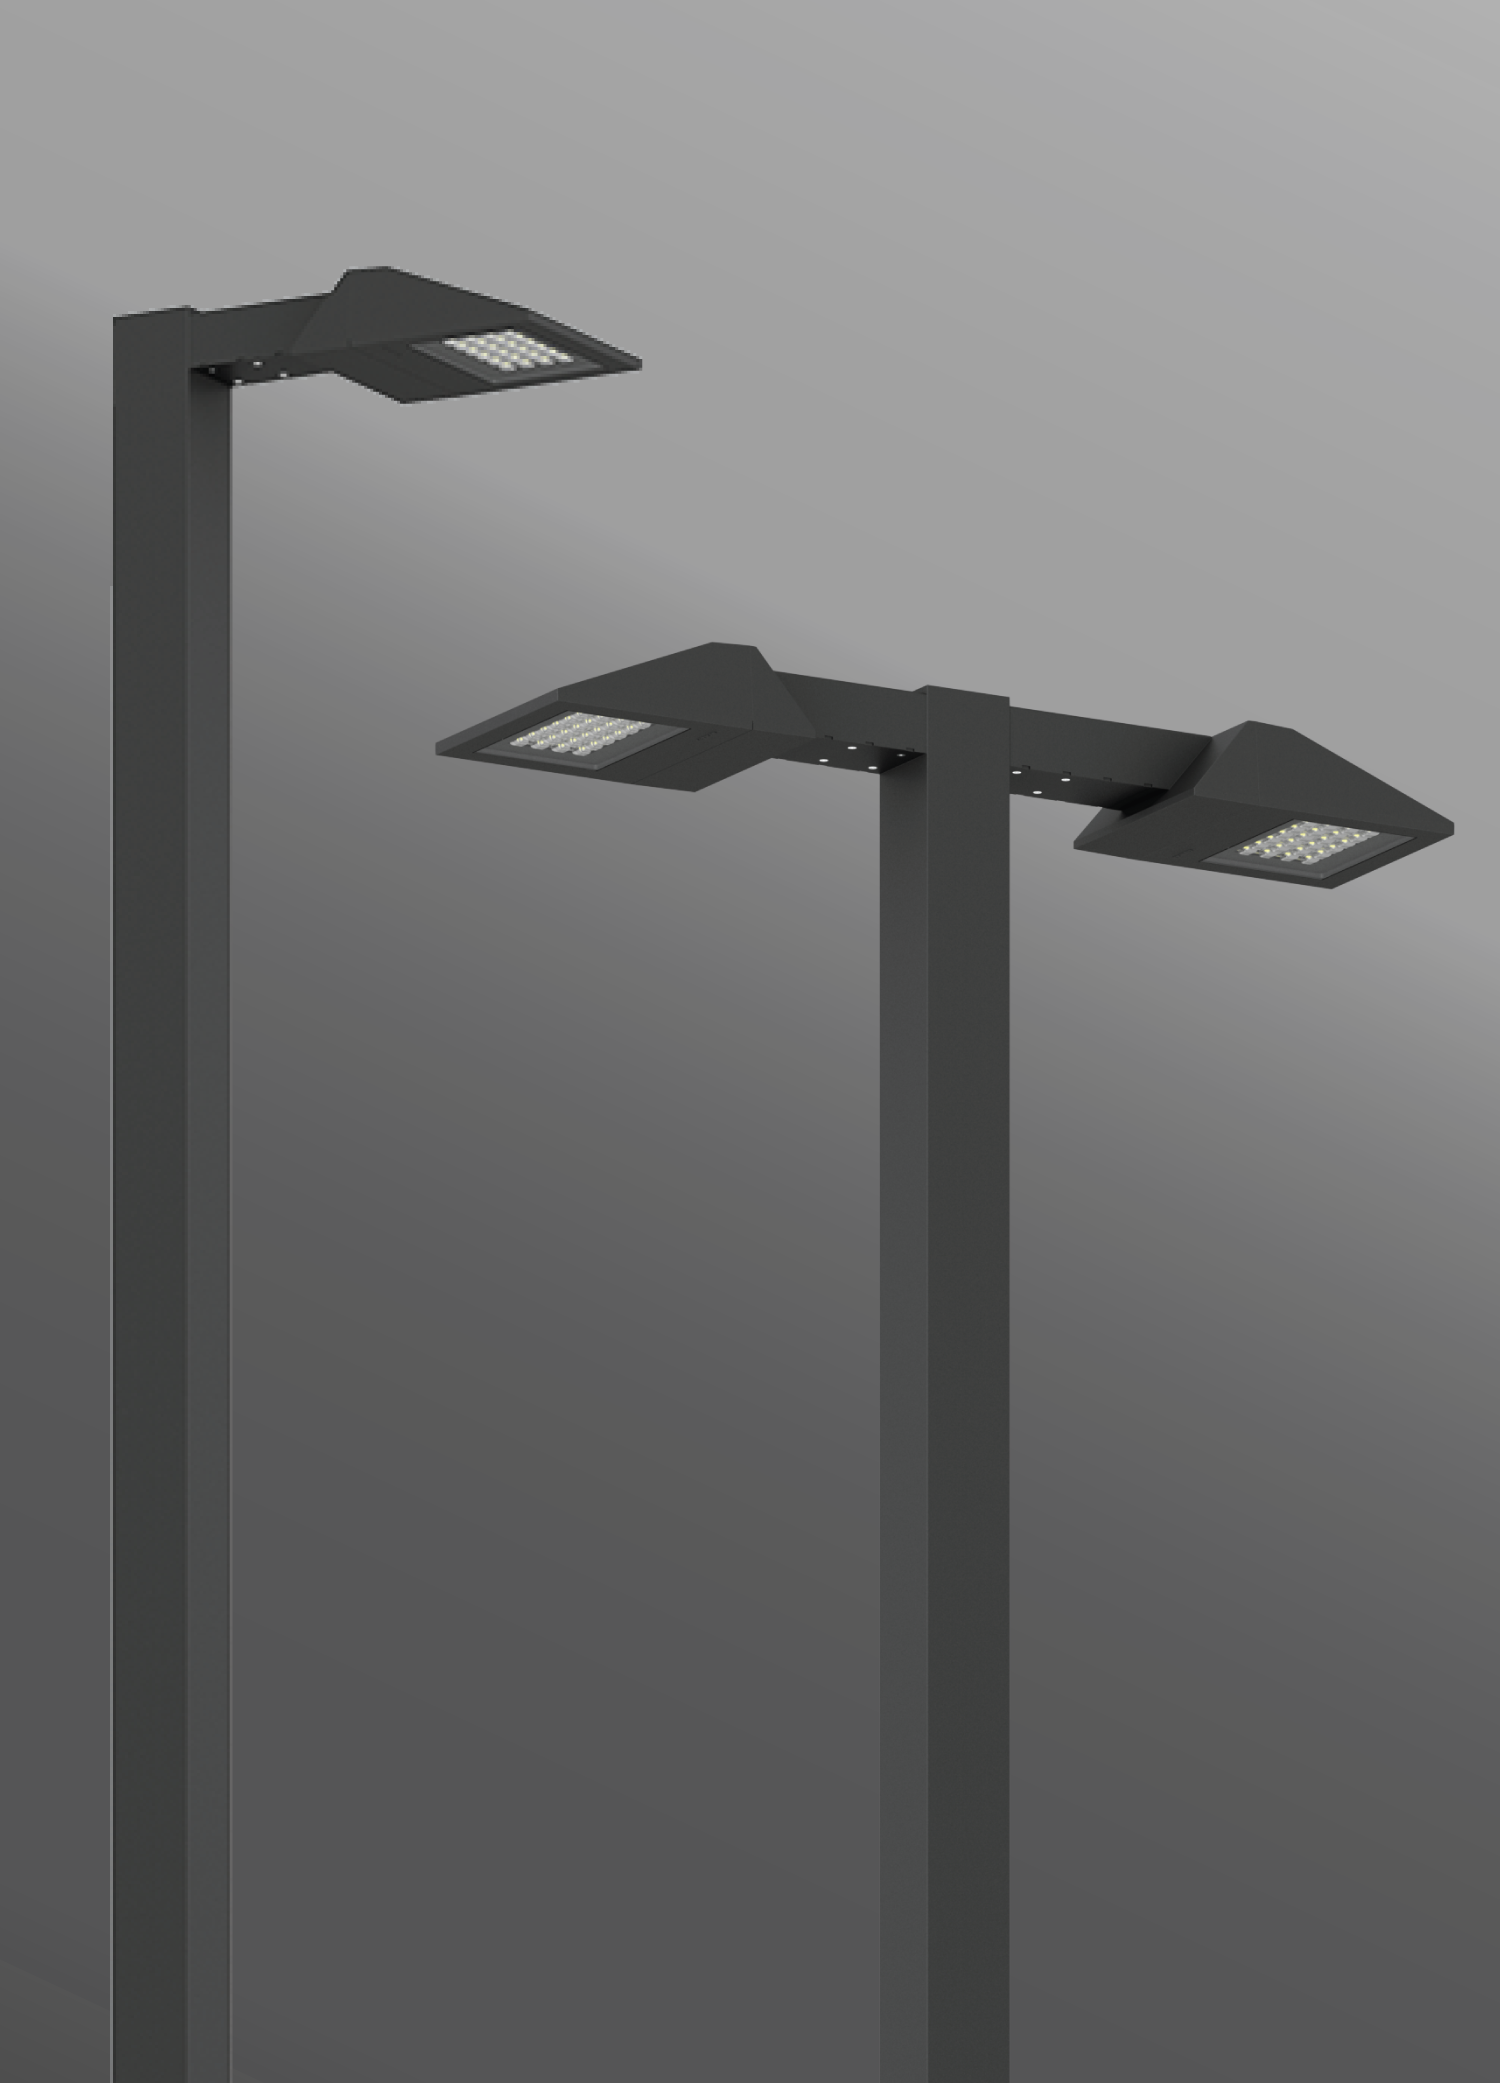 Ligman Lighting's Vekter Area Light Extended Arm (model UVK-900XX).